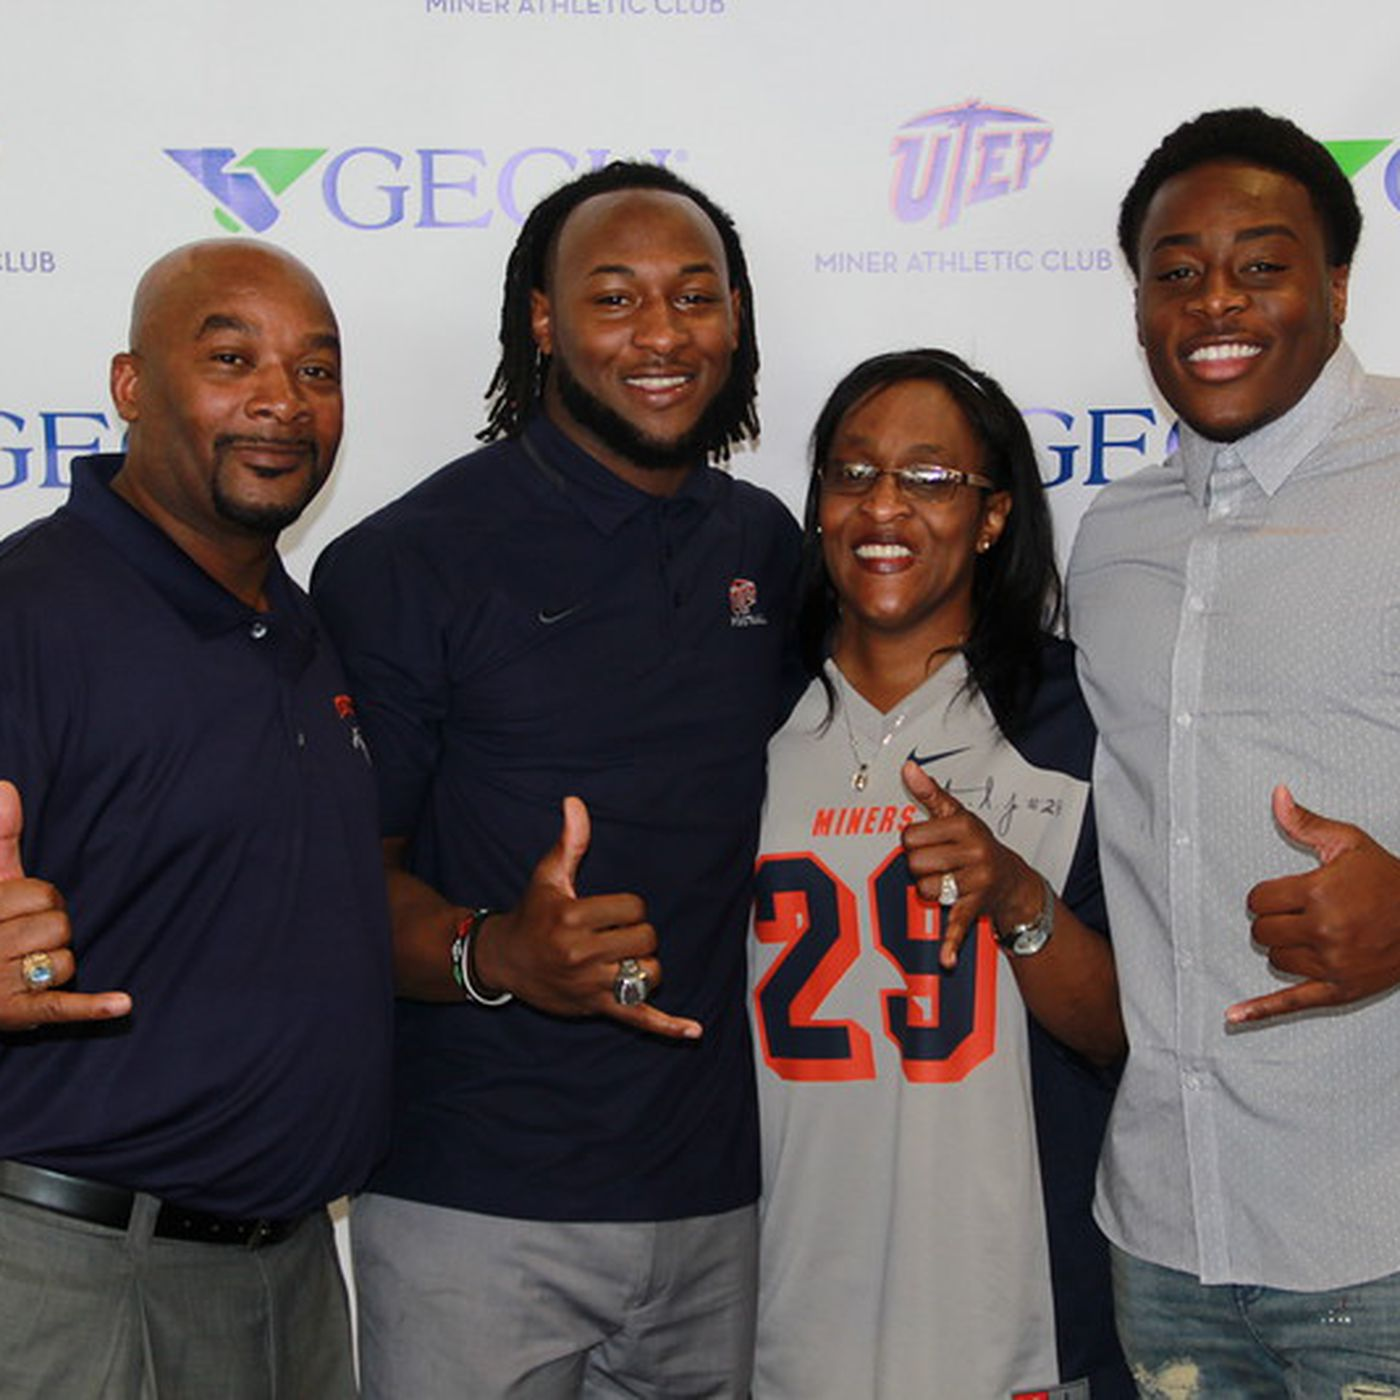 2017 Nfl Draft Green Bay Packers Select Aaron Jones In The 5th Round Miner Rush